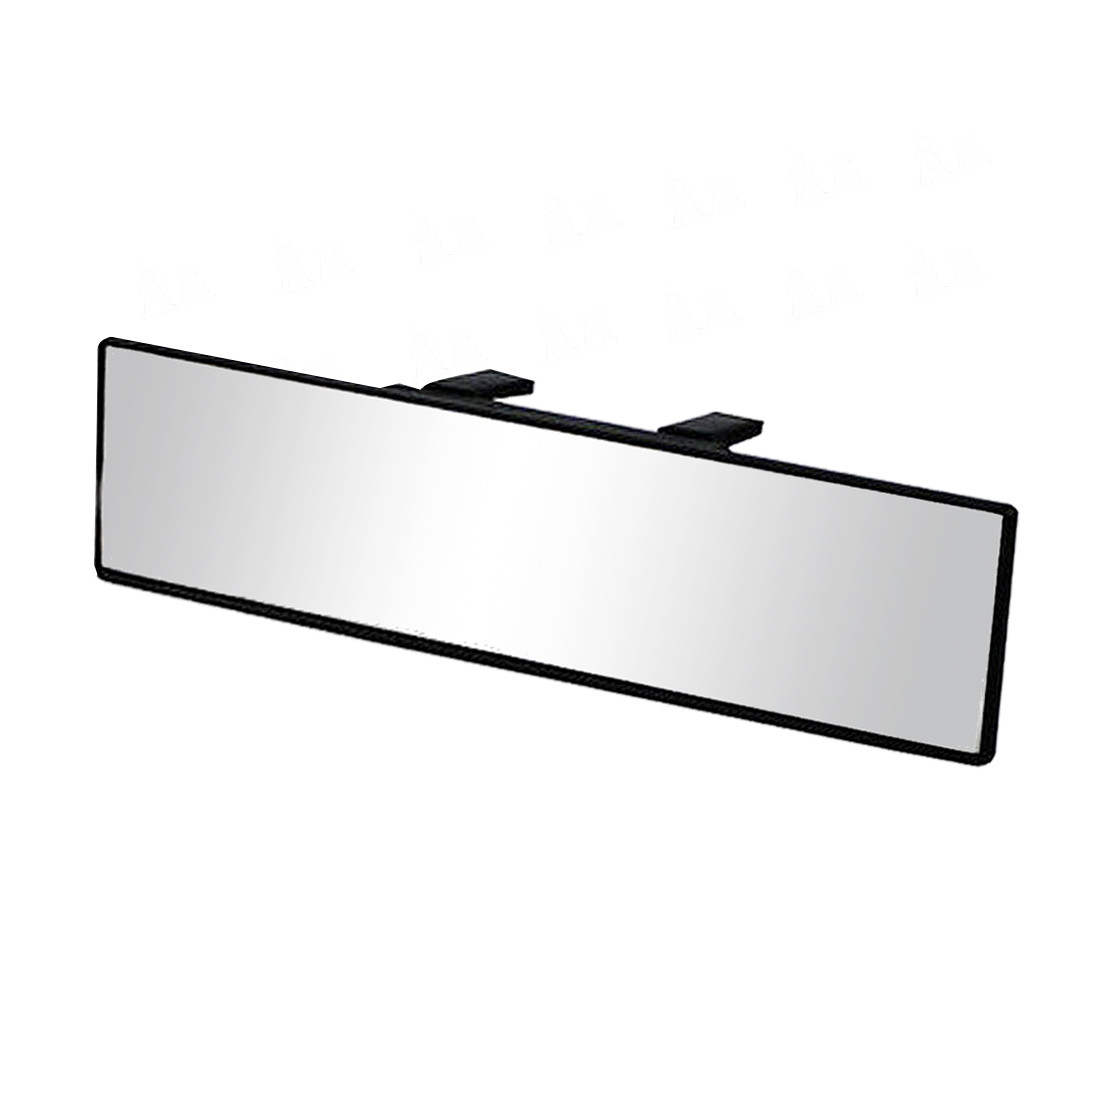 JDM 300mm Wide Flat Interior Clip On Rear View Mirror Universal for Car Truck